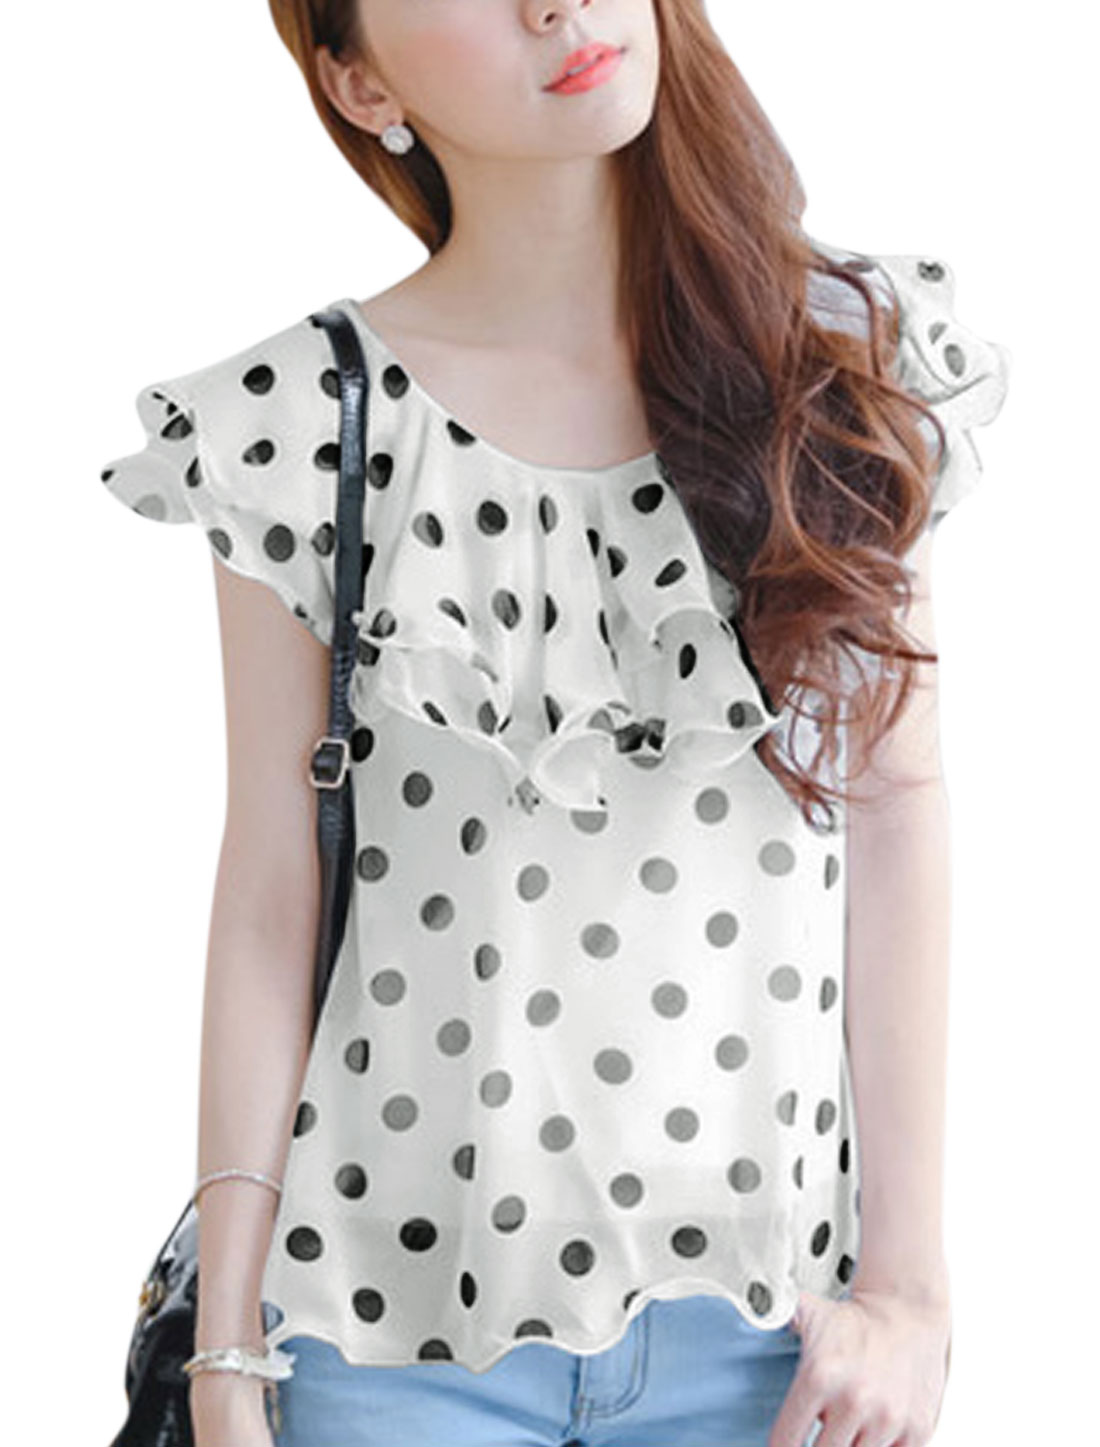 Lady's Dots Print Summer Fit Lace Up Closure Chiffon Blouse White XS